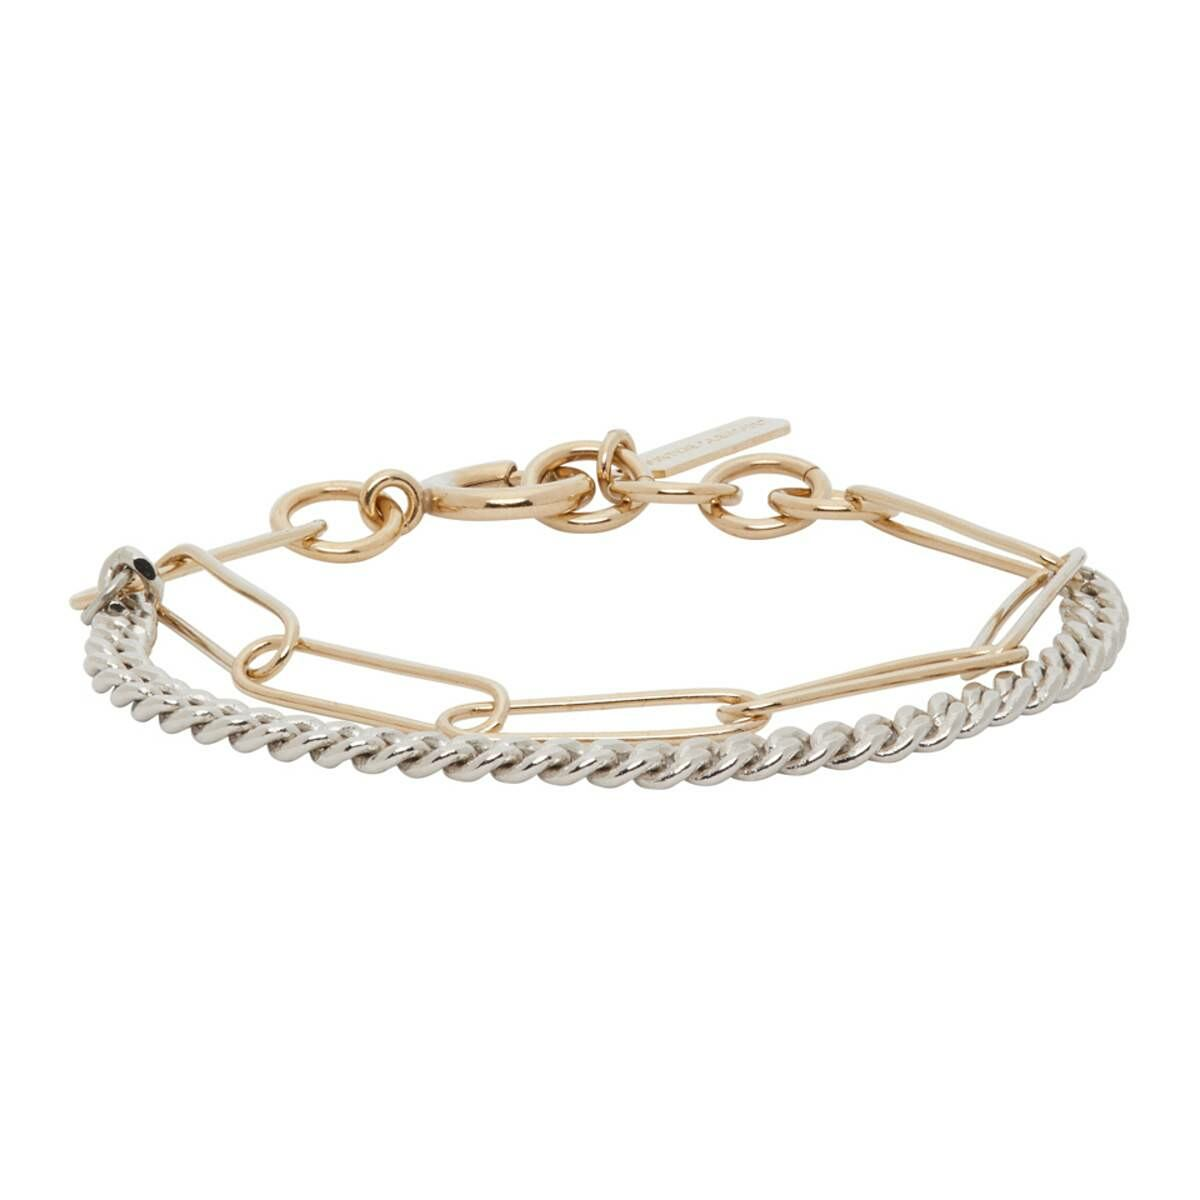 Justine Clenquet Silver and Gold Pixie Bracelet Ssense USA WOMEN Women ACCESSORIES Womens JEWELRY